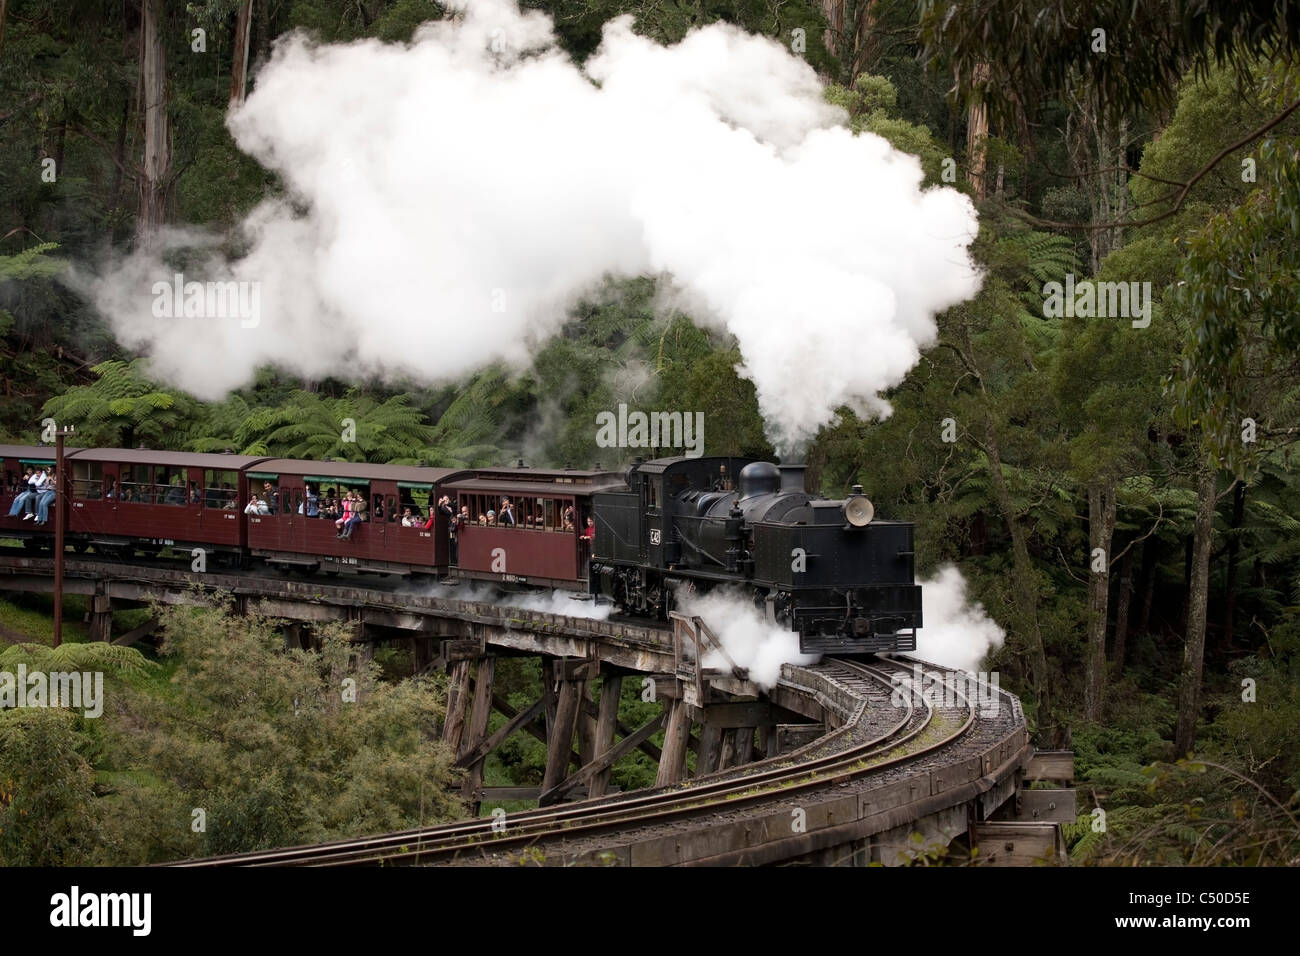 This century-old steam train is still running on its original mountain track in the scenic Dandenong Ranges Melbourne - Stock Image